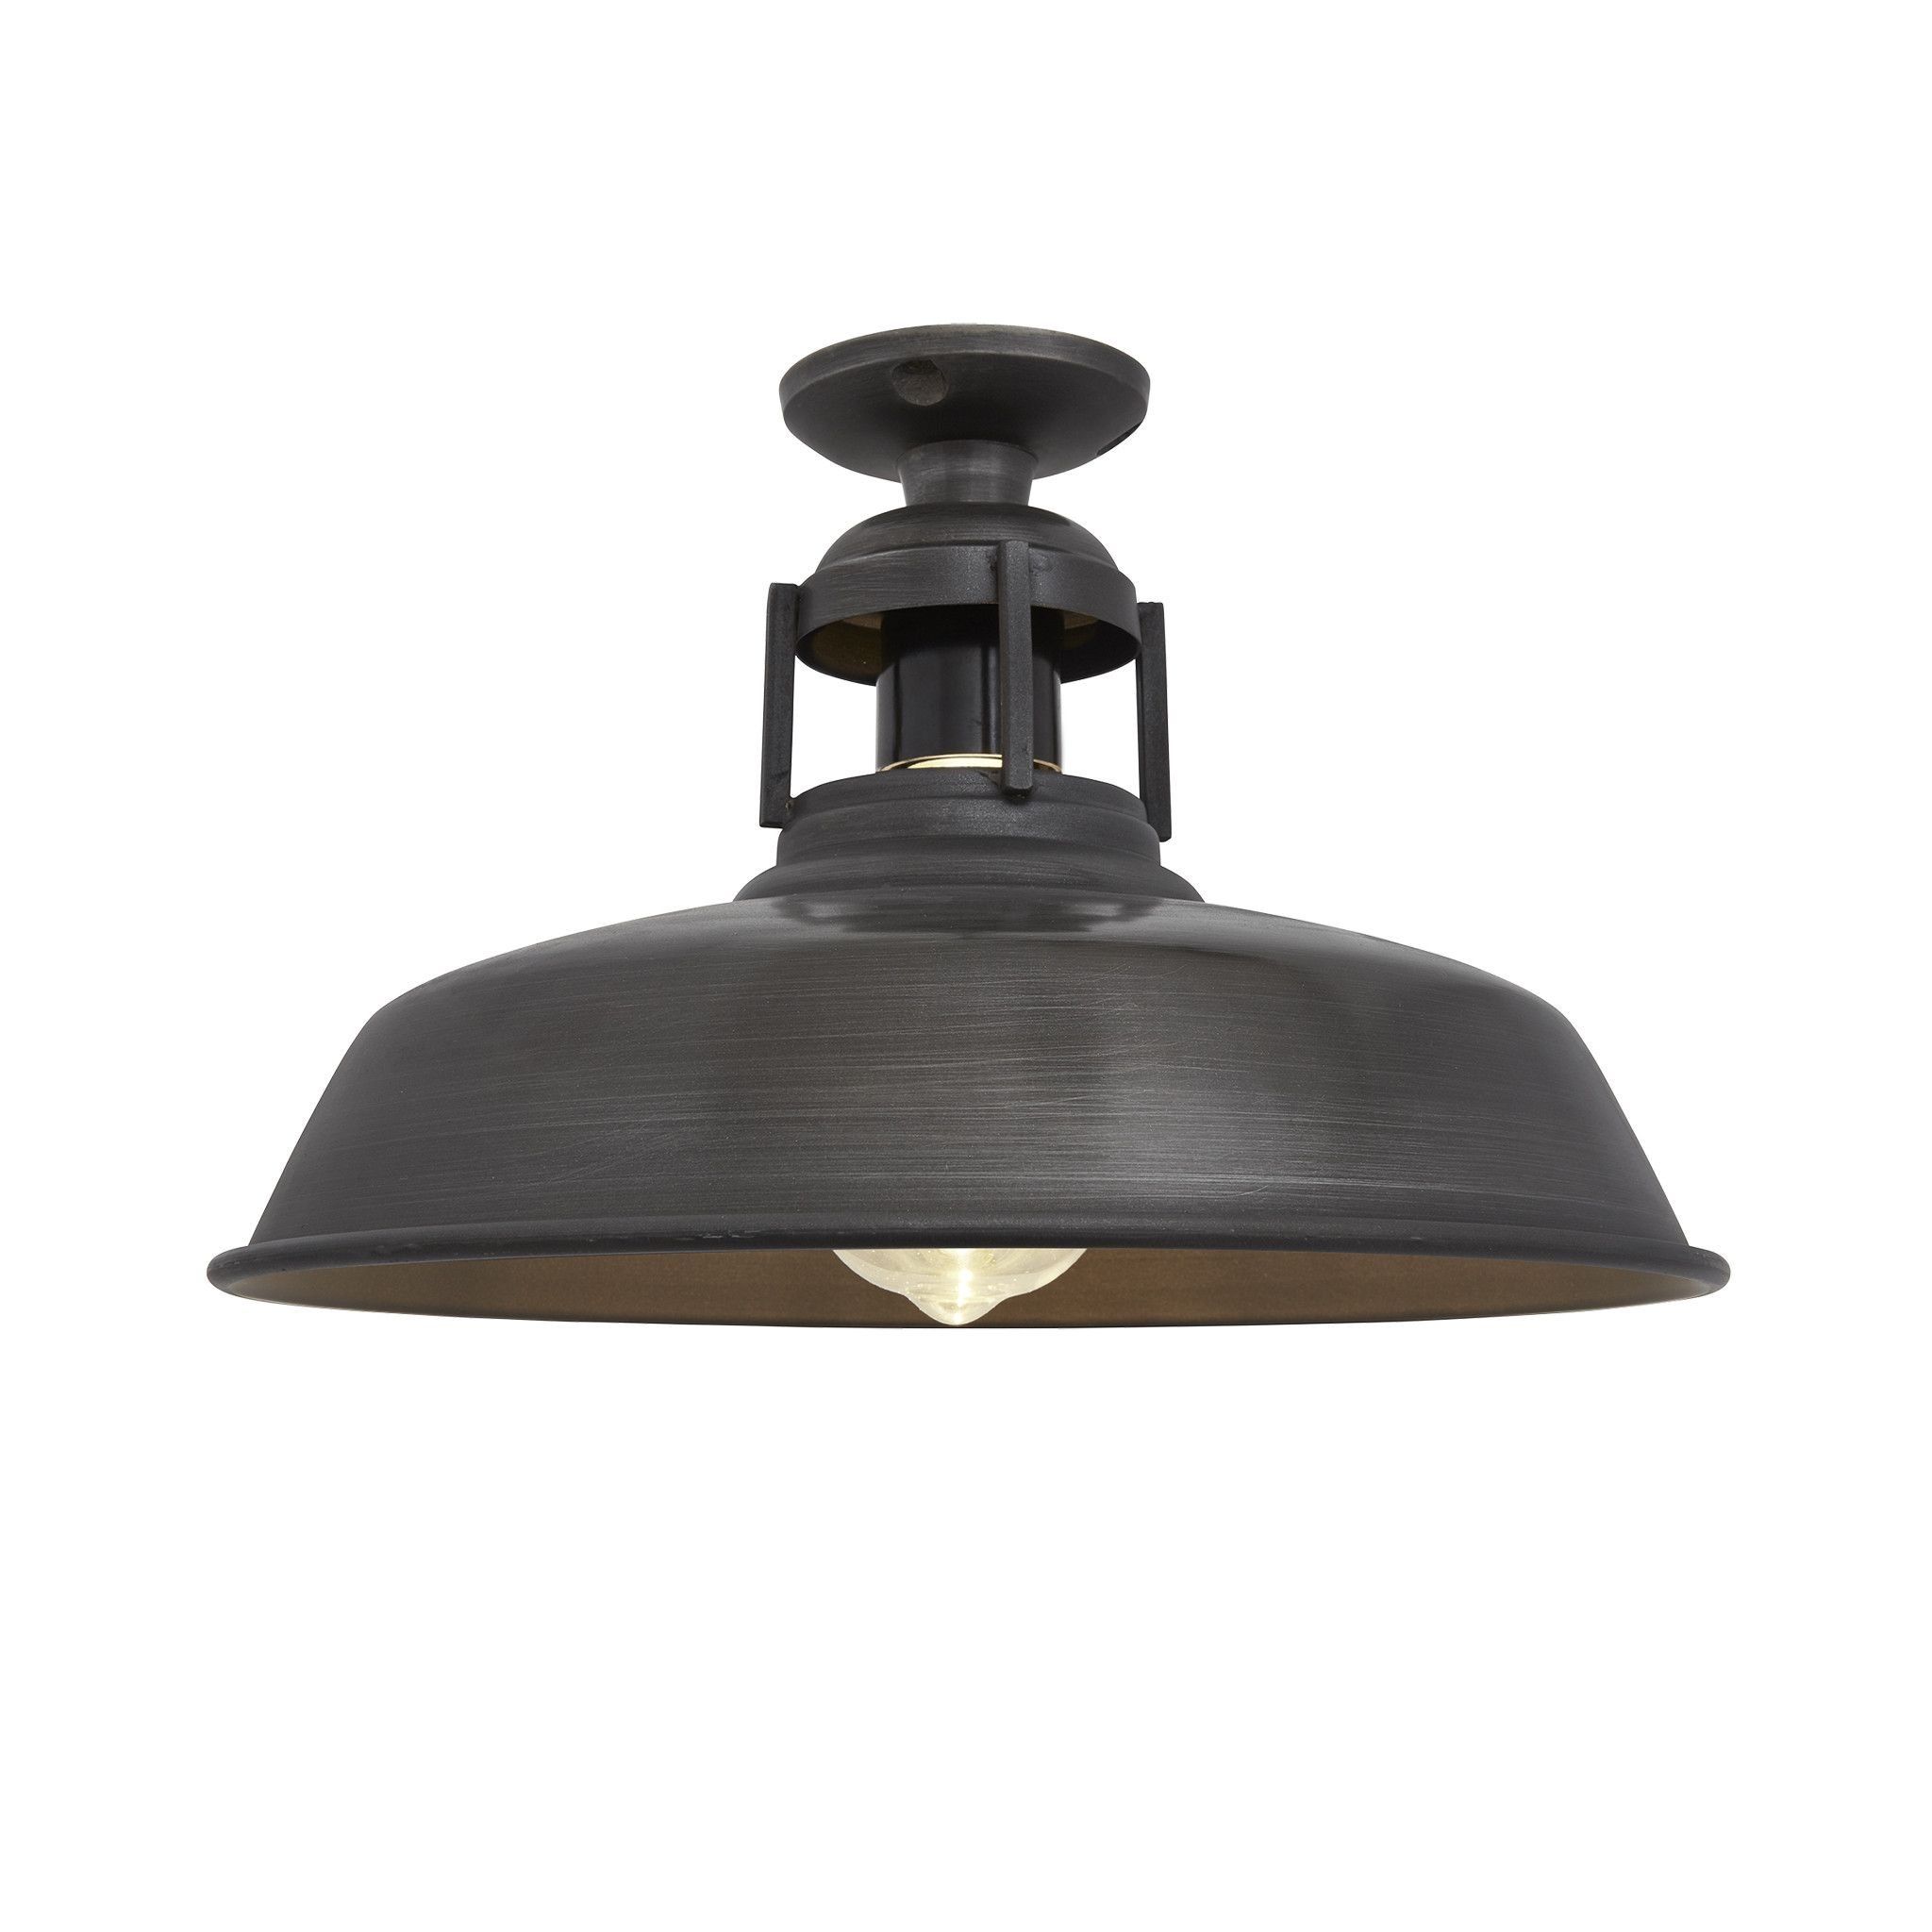 Vintage industrial barn slotted flush mount ceiling light pewter vintage industrial barn slotted flush mount ceiling light pewter aloadofball Image collections